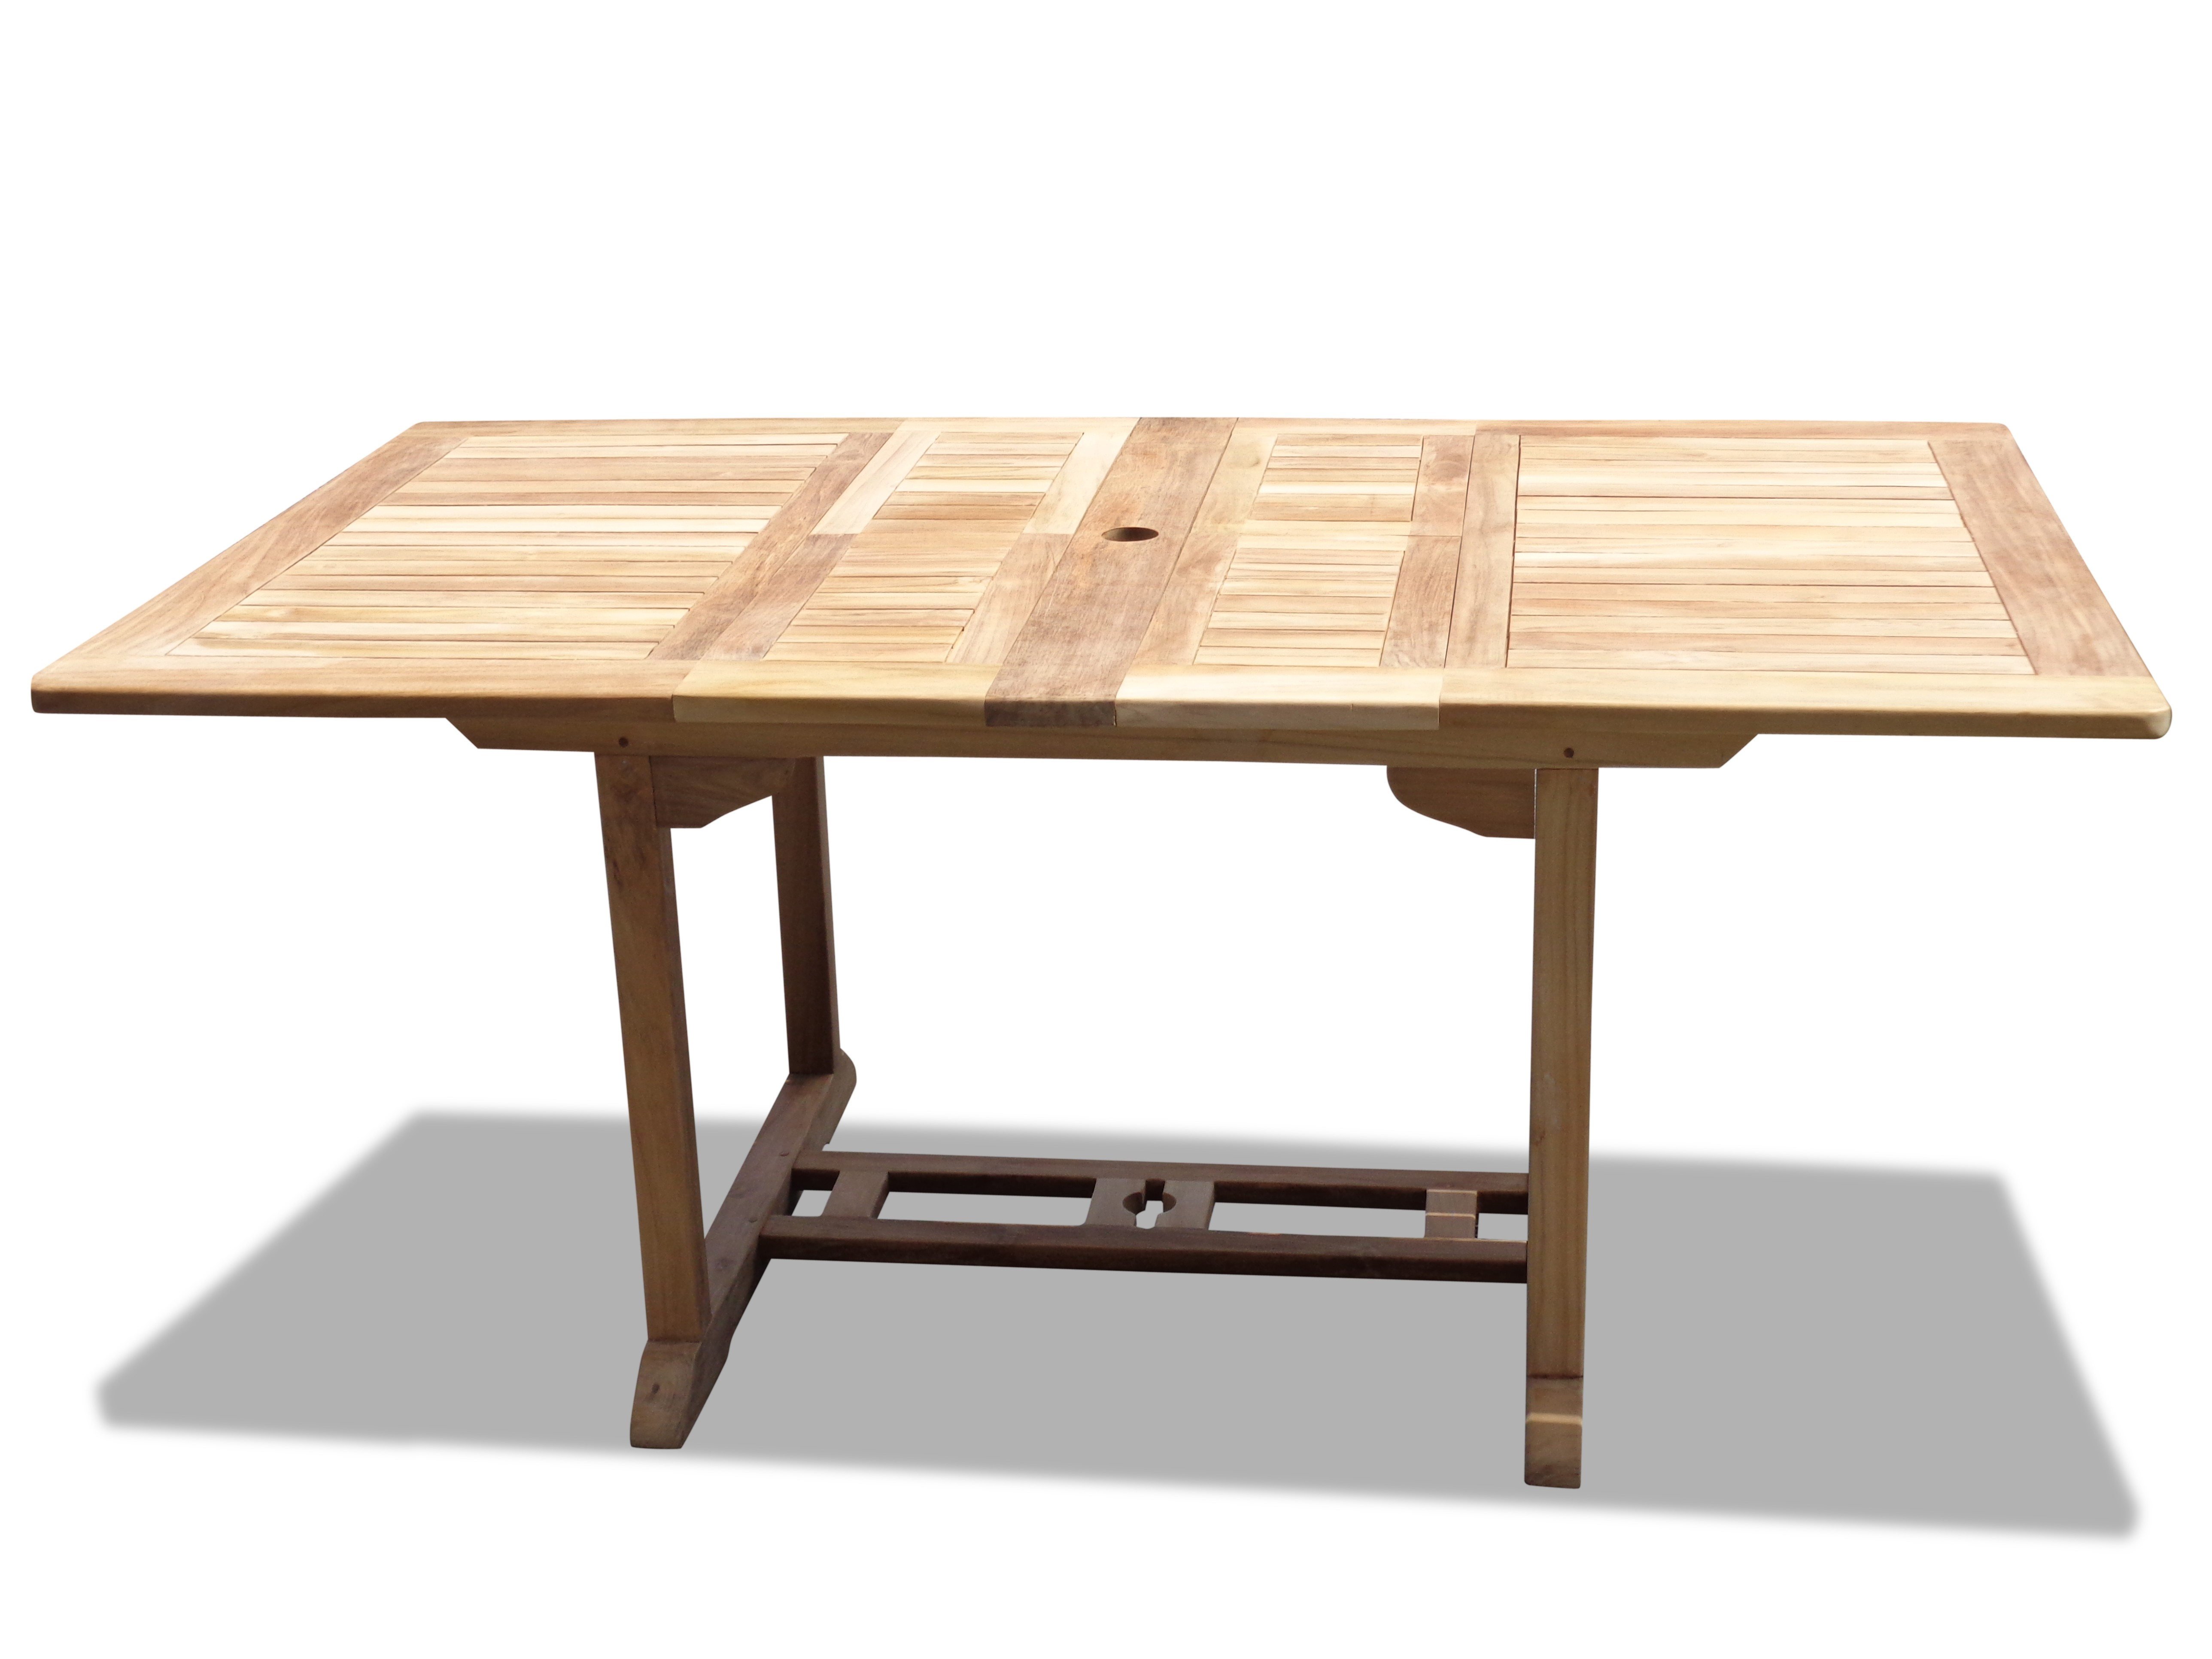 "Buckingham 66"" x 39"" Double Leaf Rectangular Teak Extension Table...Seats 8...makes 3 Different Size Tables"